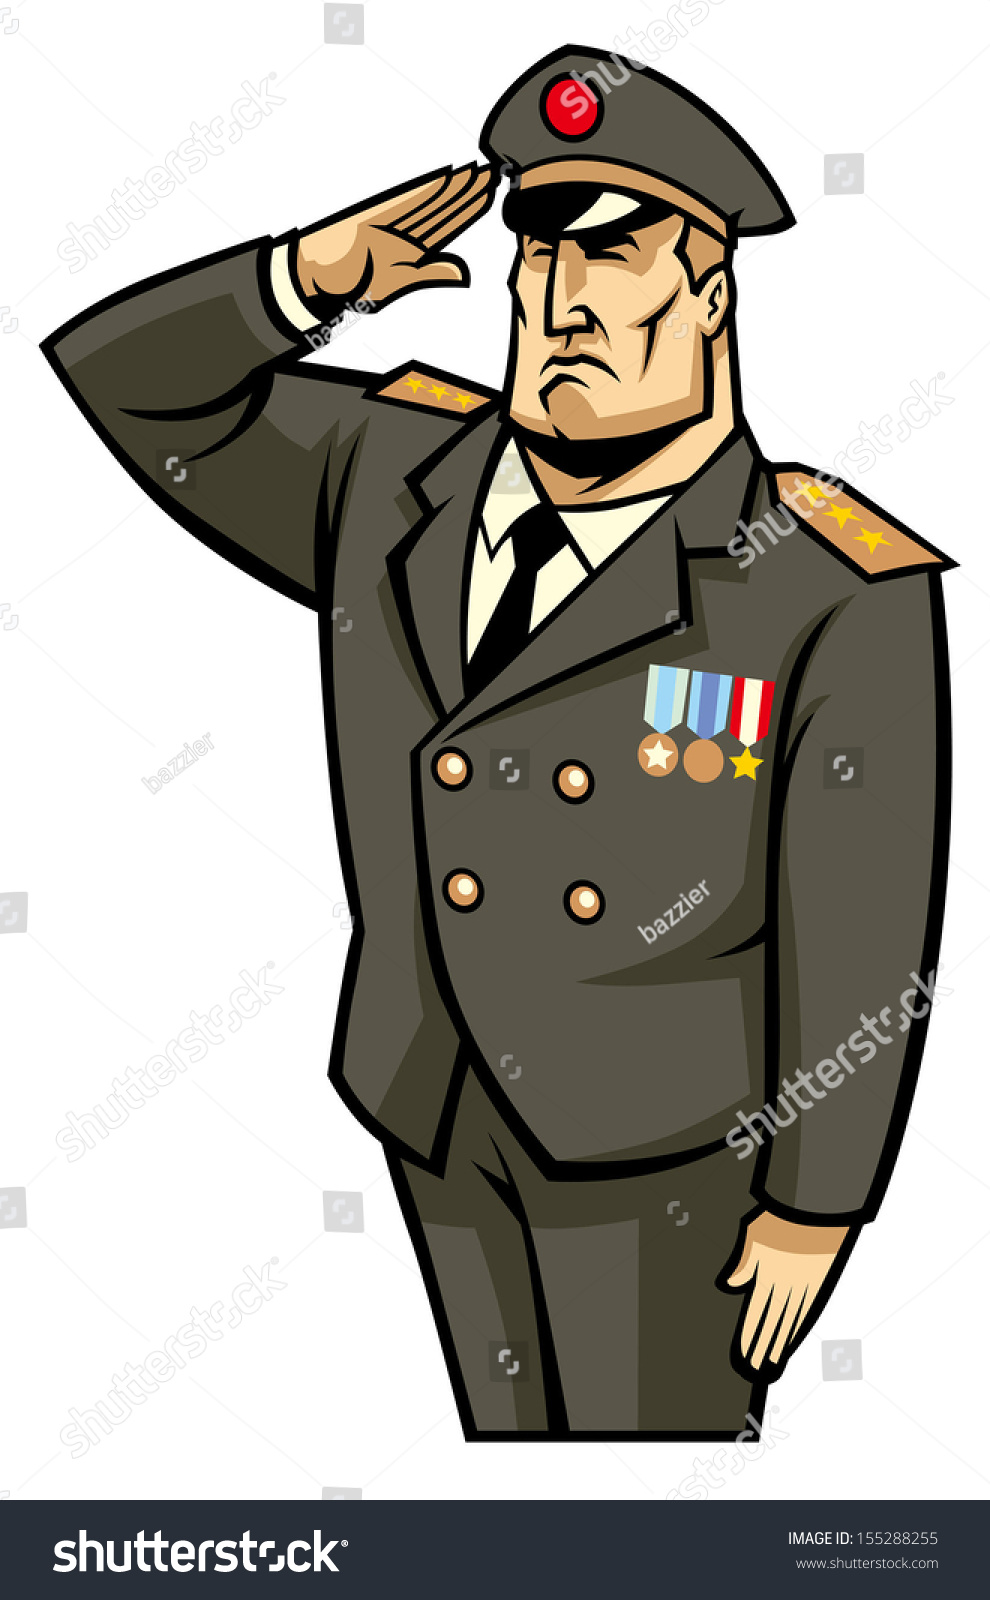 Soldier Salute Stock Vector Illustration 155288255 ...